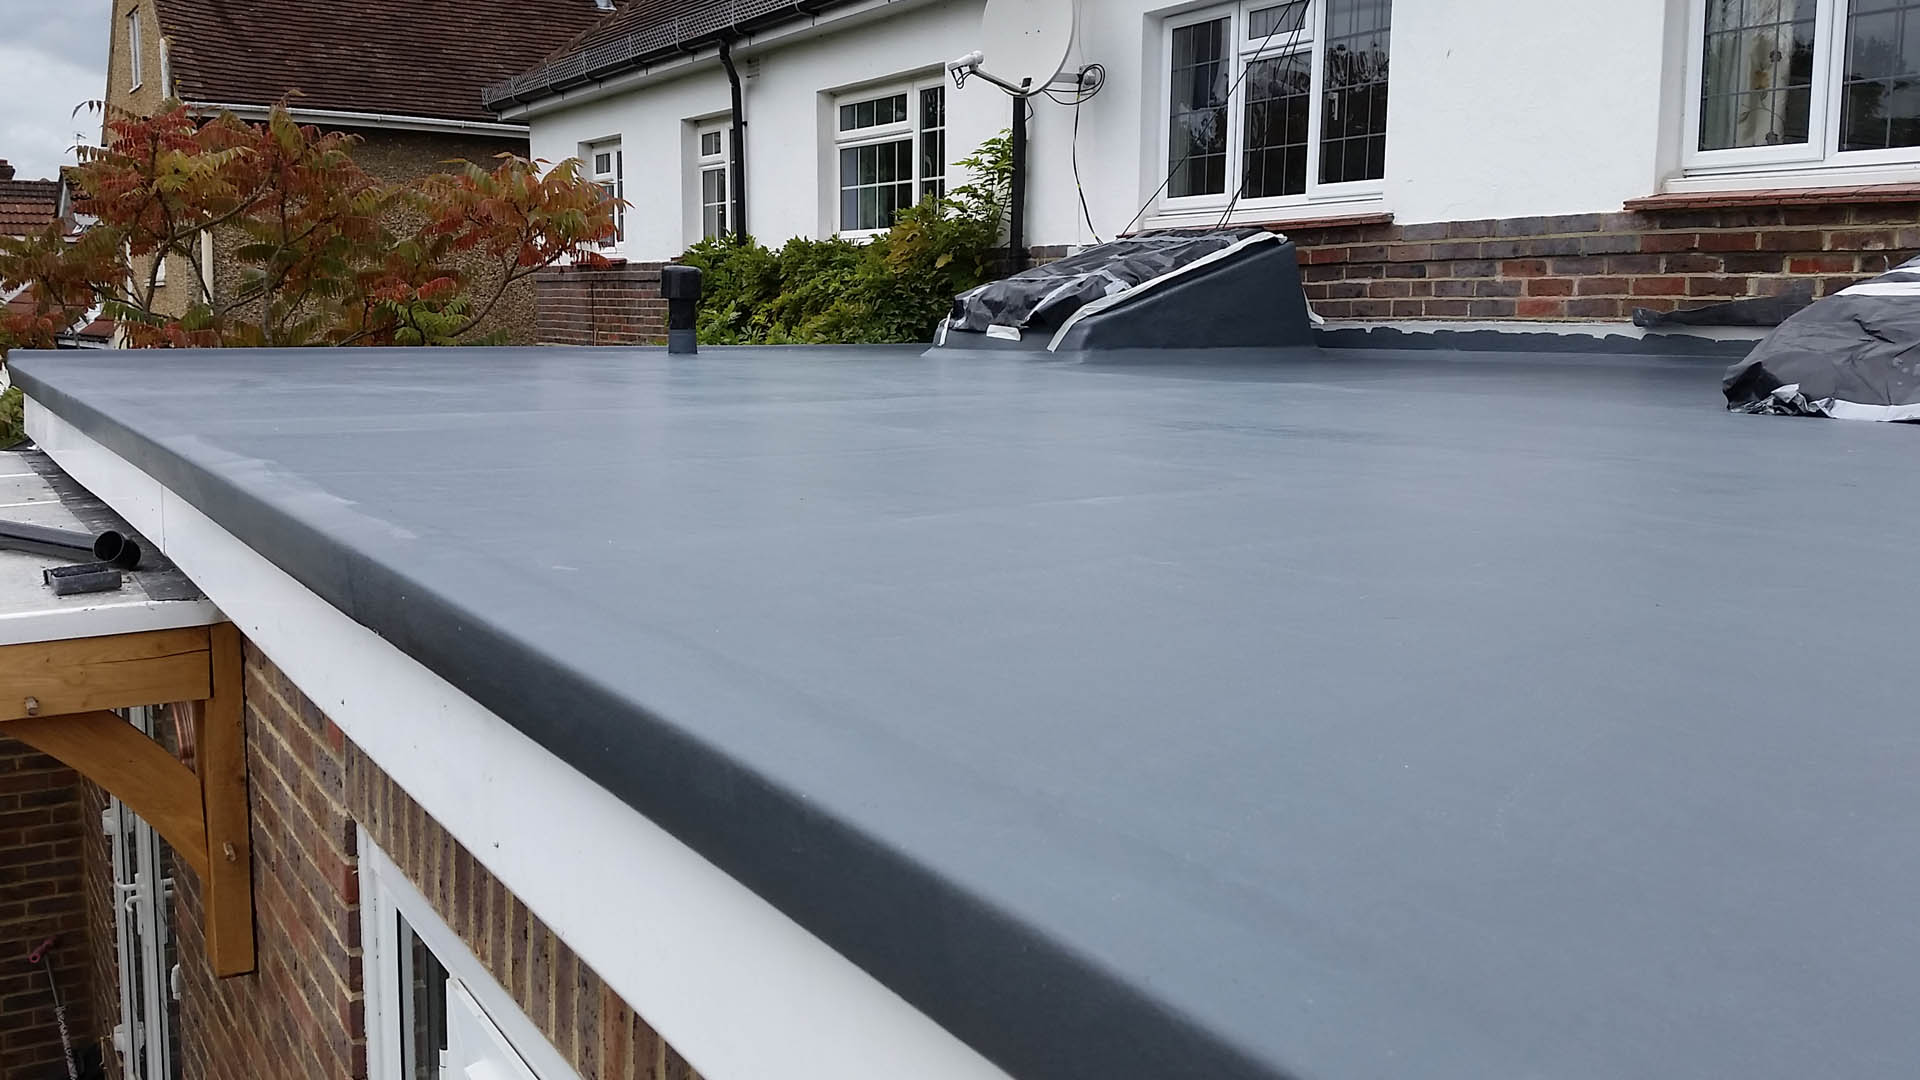 Uncategorized How To Make A Flat Roof new build flat roof west sussex fibreglass services in roofs